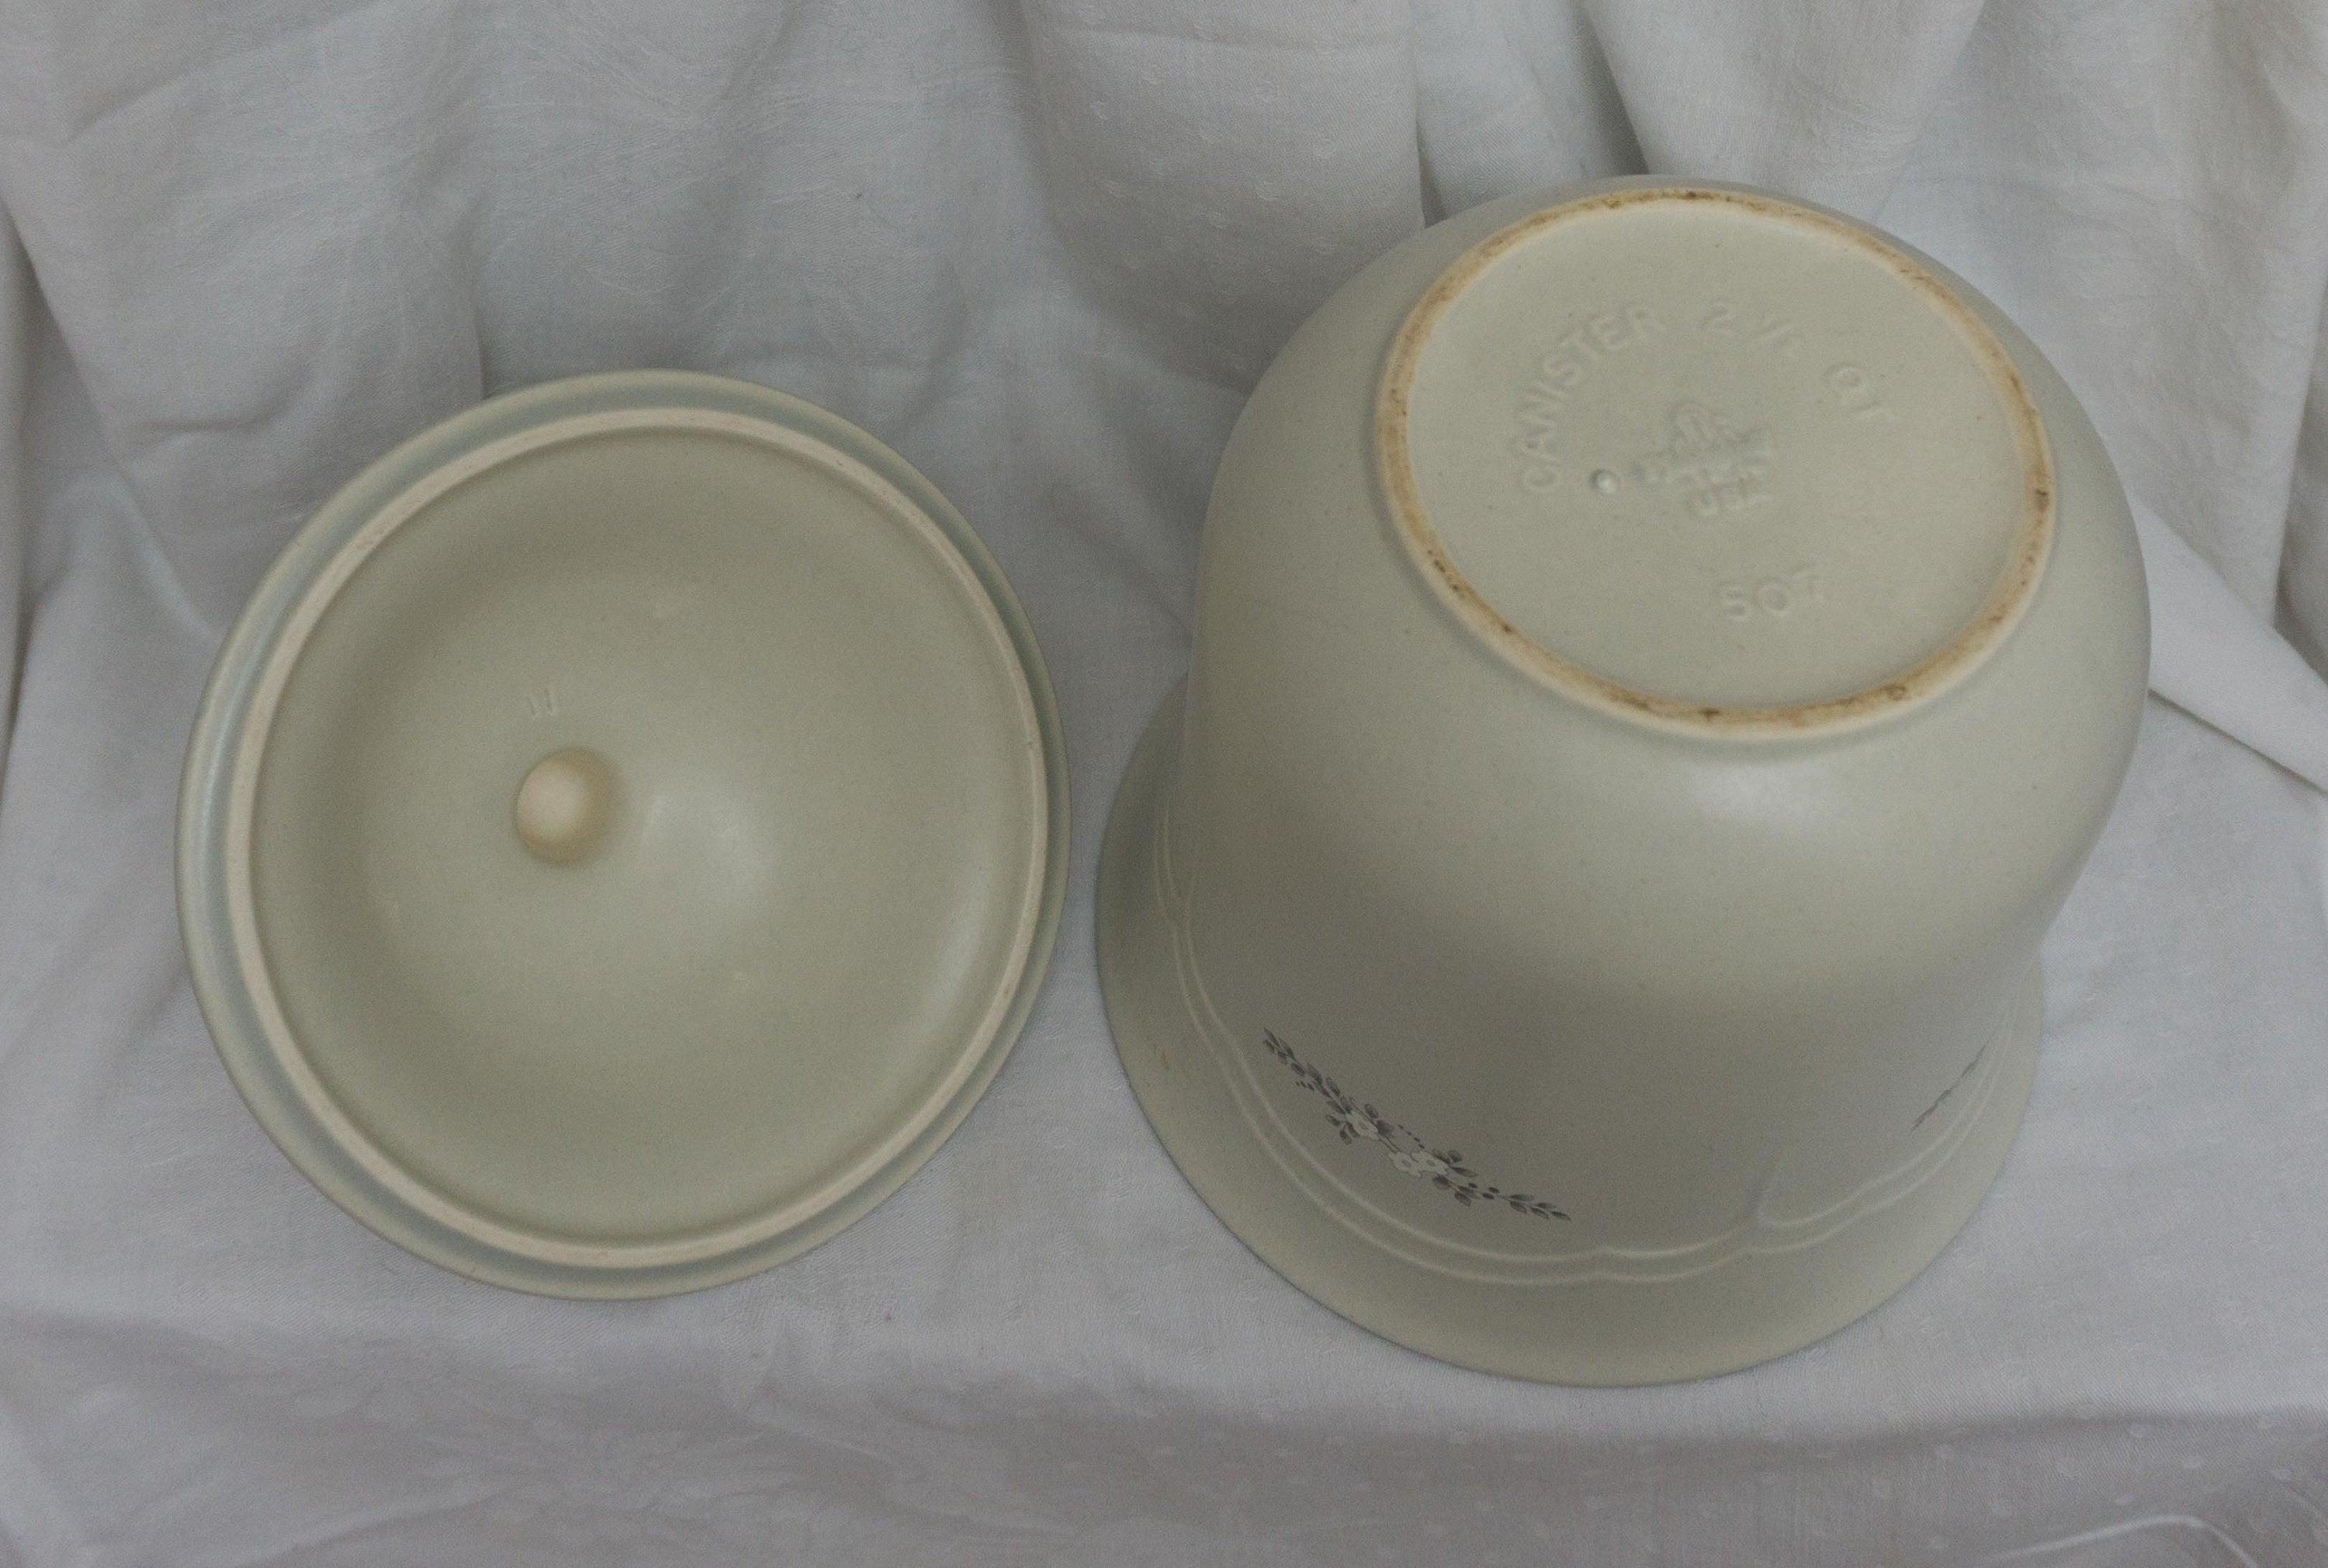 Vintage Retired Pfaltzgraff Heirloom 507 2.5 Quart Flour Canister WITH LID Stoneware